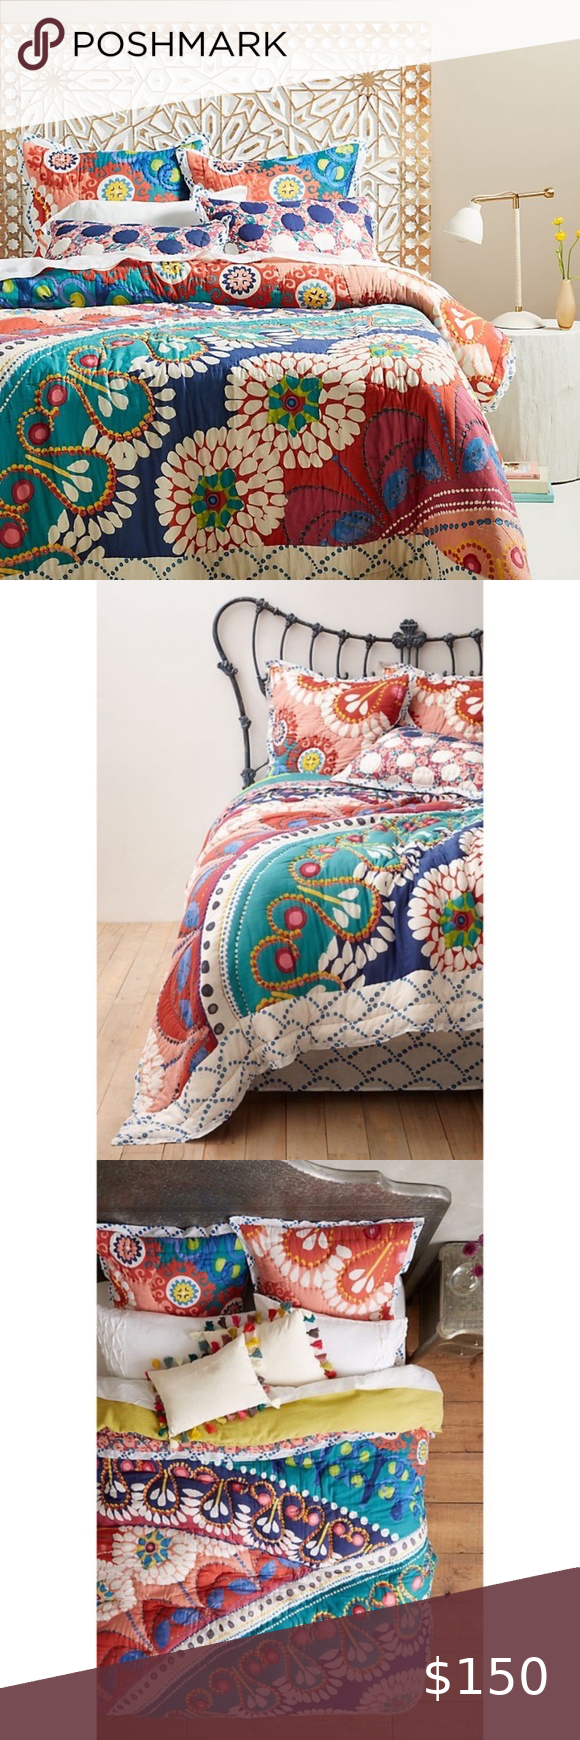 Anthropologie Tahla Twin Colorful Quilt Bedding In 2020 Colorful Quilt Bedding Quilt Bedding Colorful Quilts